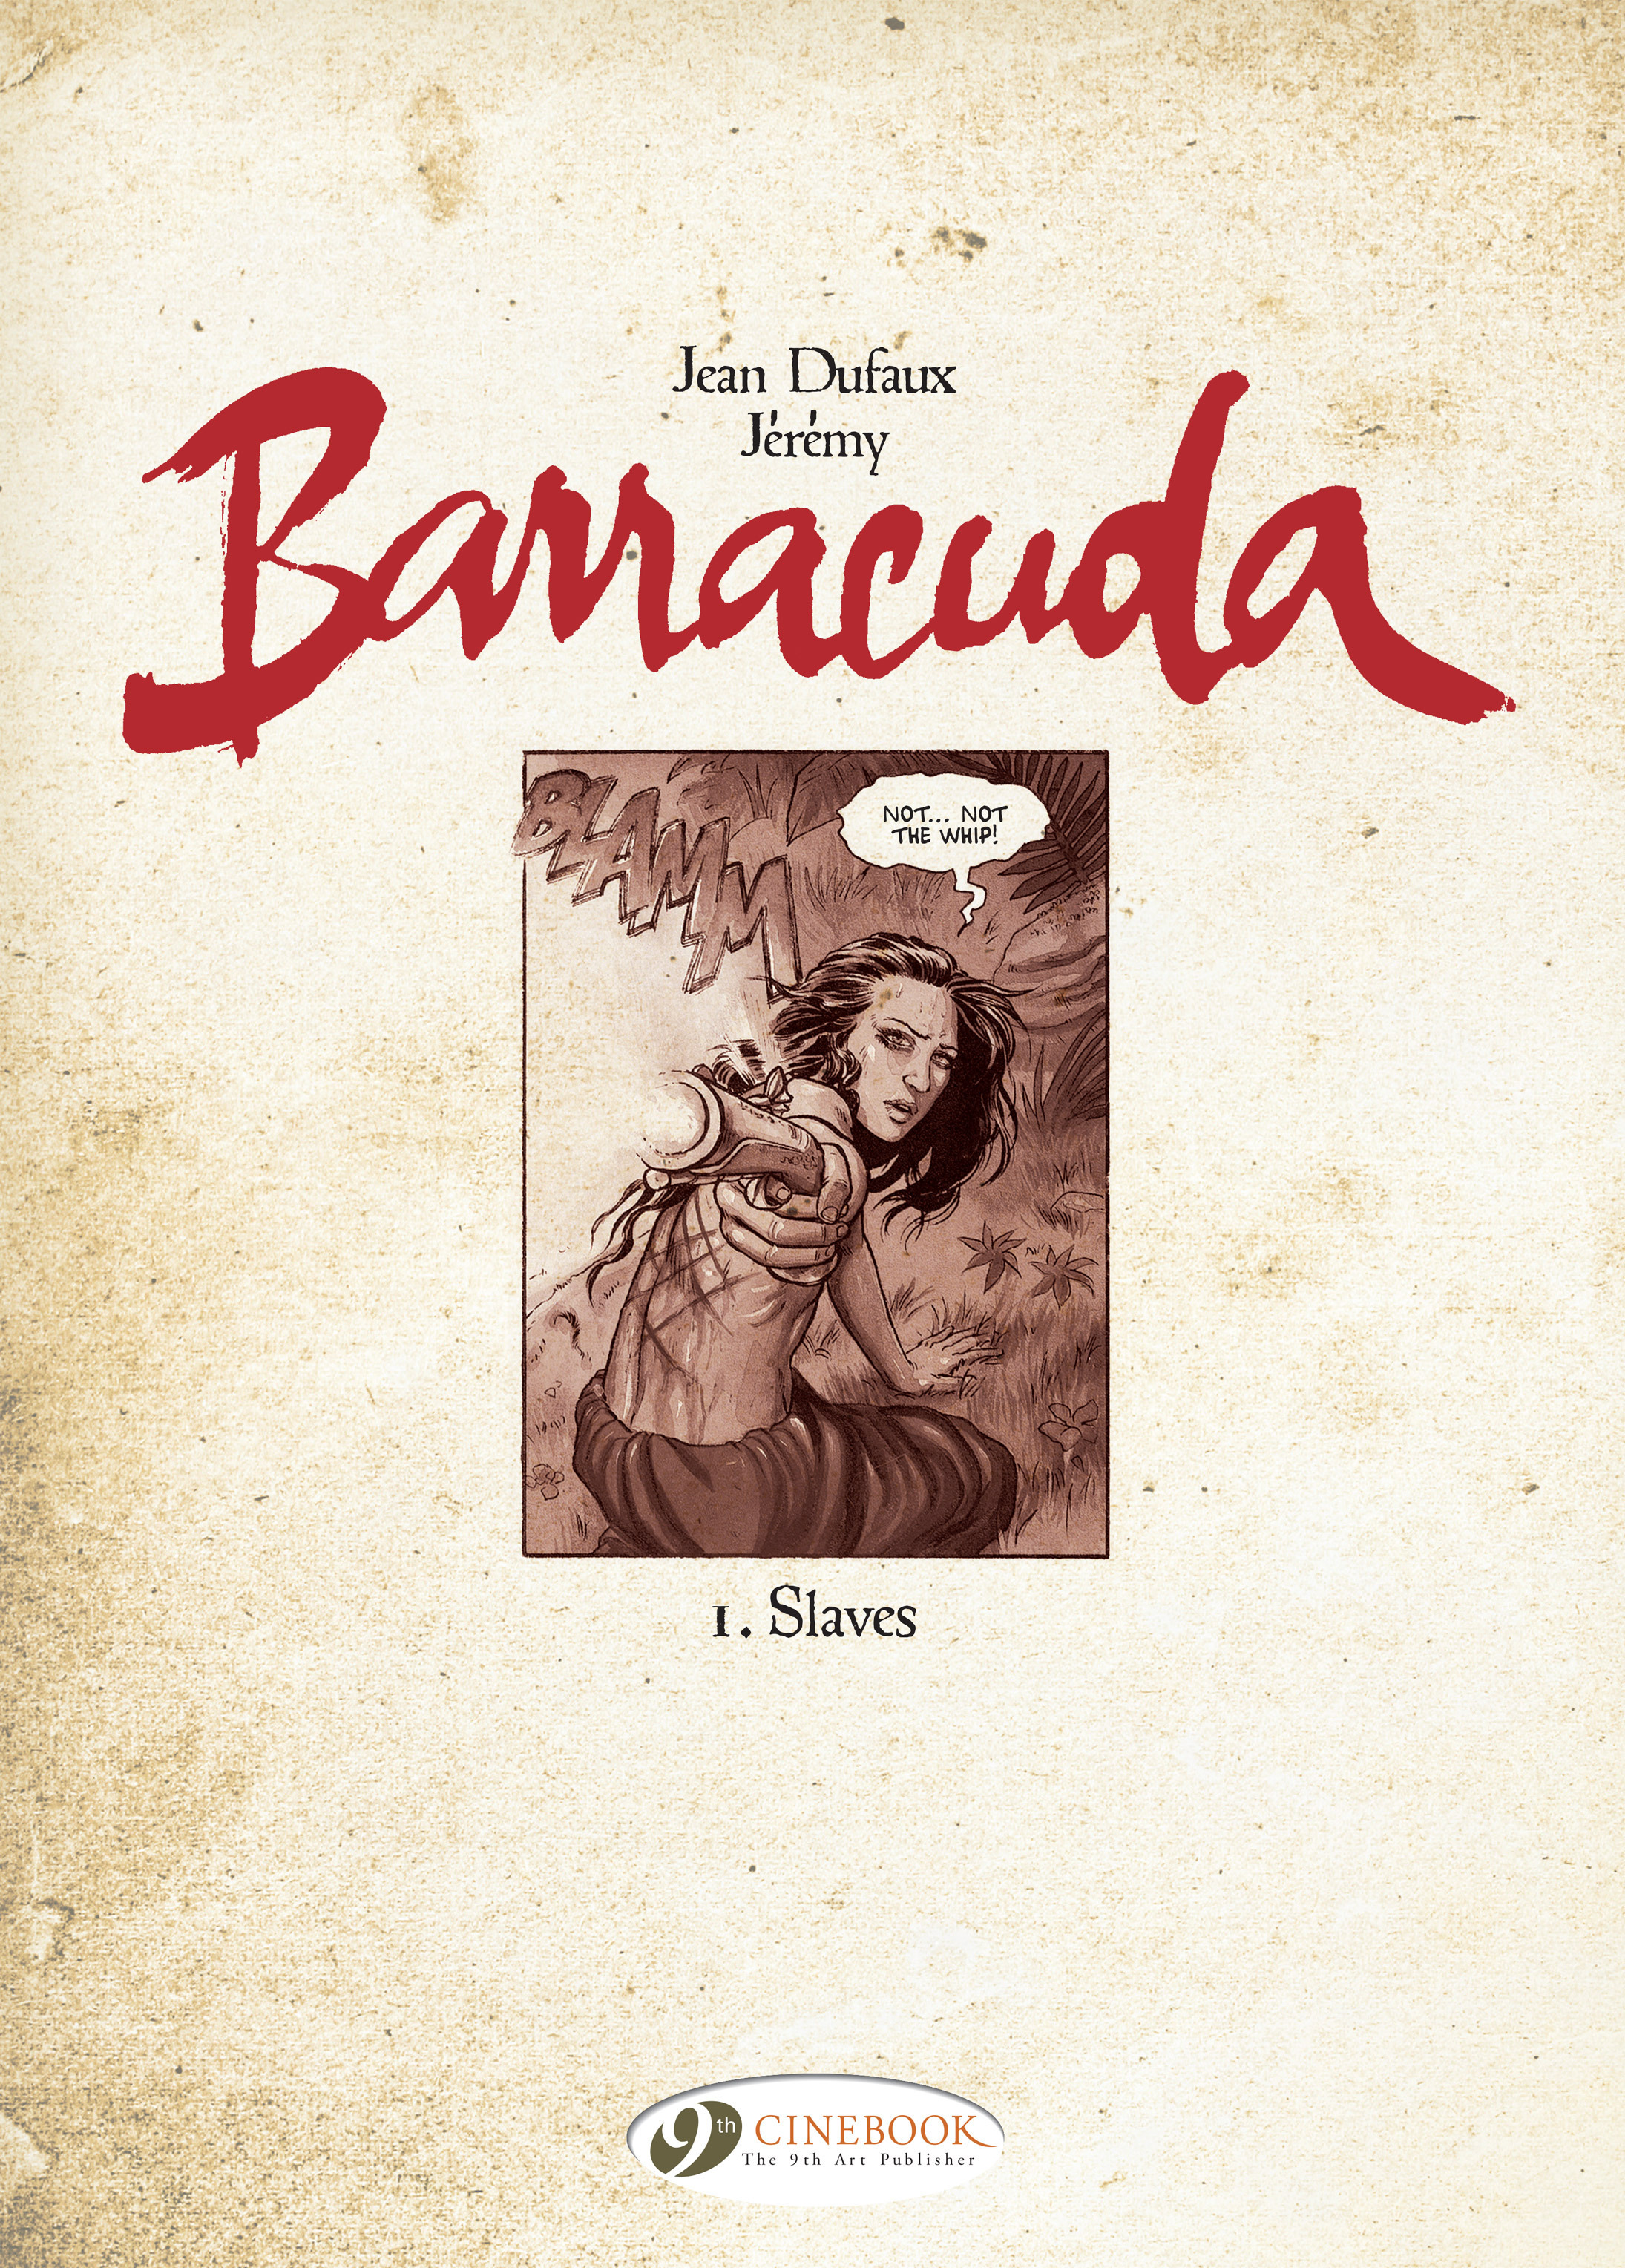 Read online Barracuda comic -  Issue #1 - 2